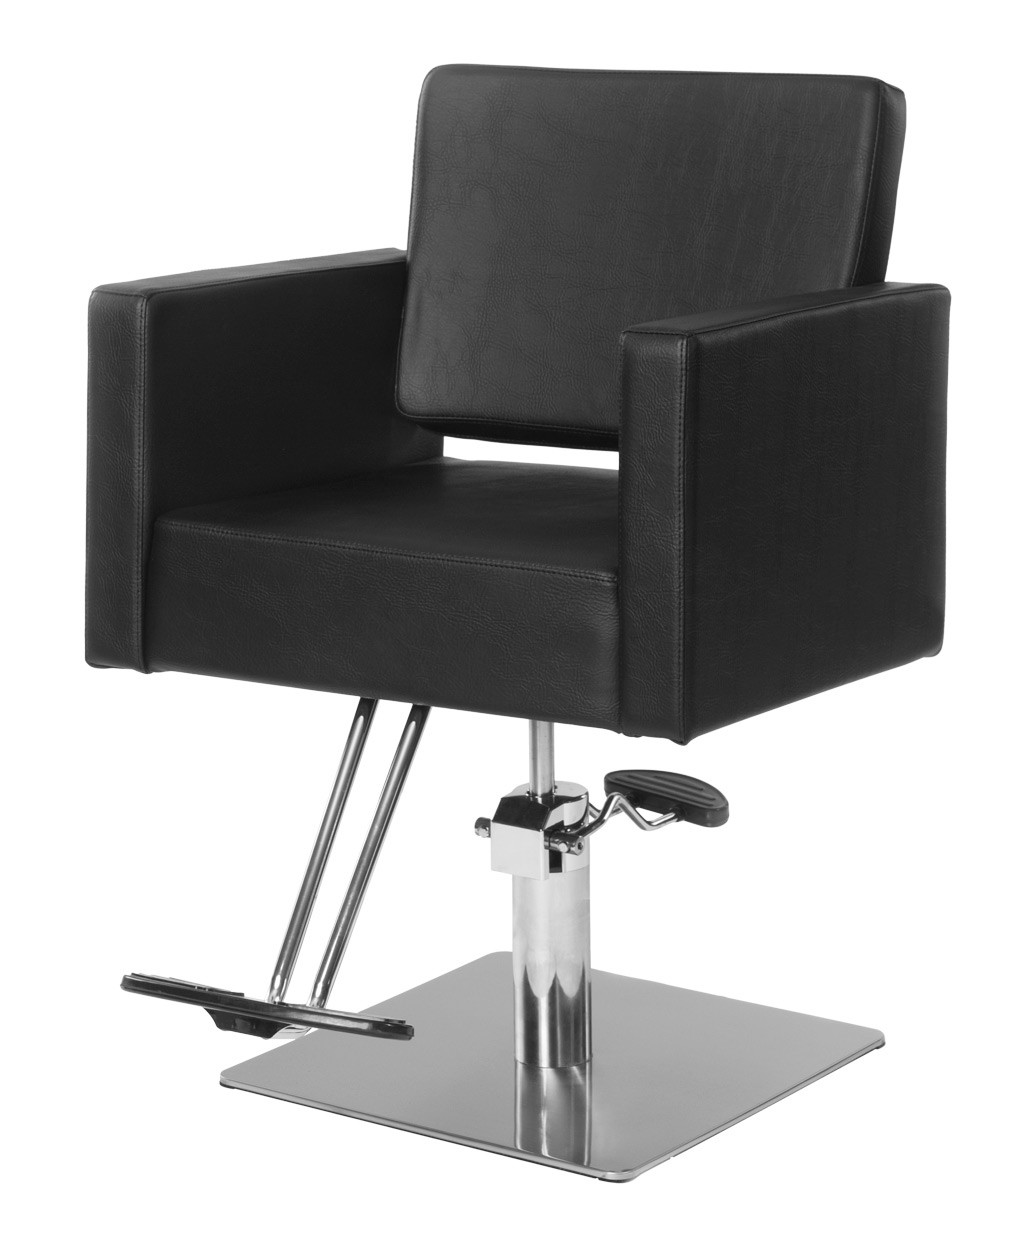 Hair Salon Styling Chairs Br Beauty Christina Salon Styling Chair Black  Walmart